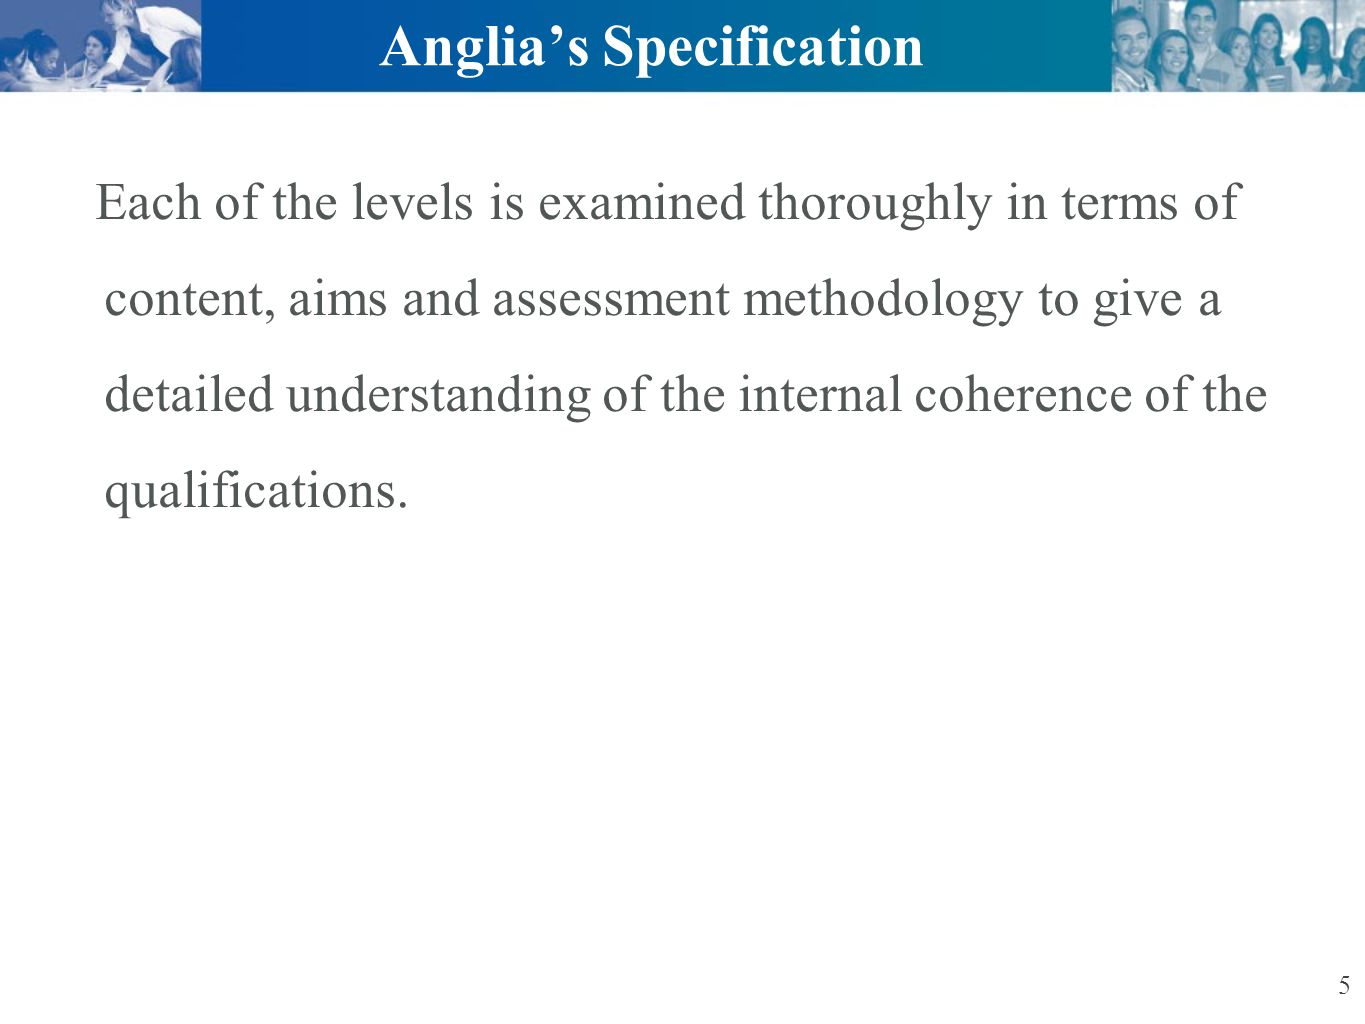 Anglia's Specification